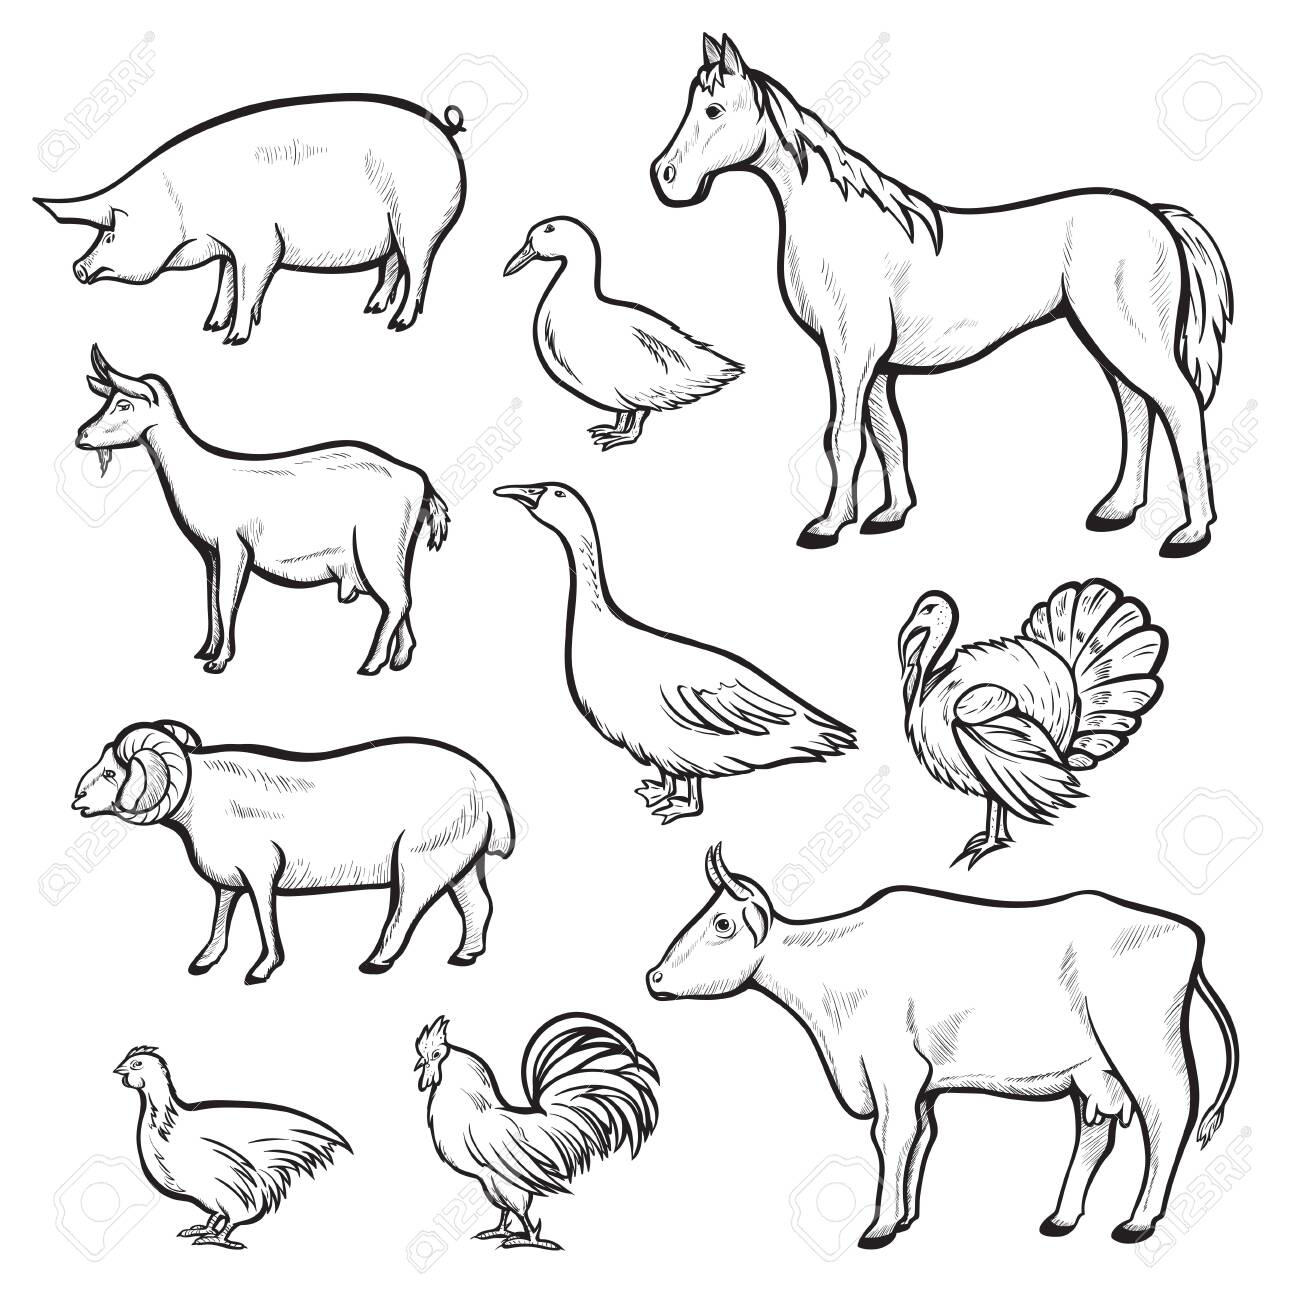 Farm Animal Drawing Set Domestic And Agriculture Symbol Animals Royalty Free Cliparts Vectors And Stock Illustration Image 123012494